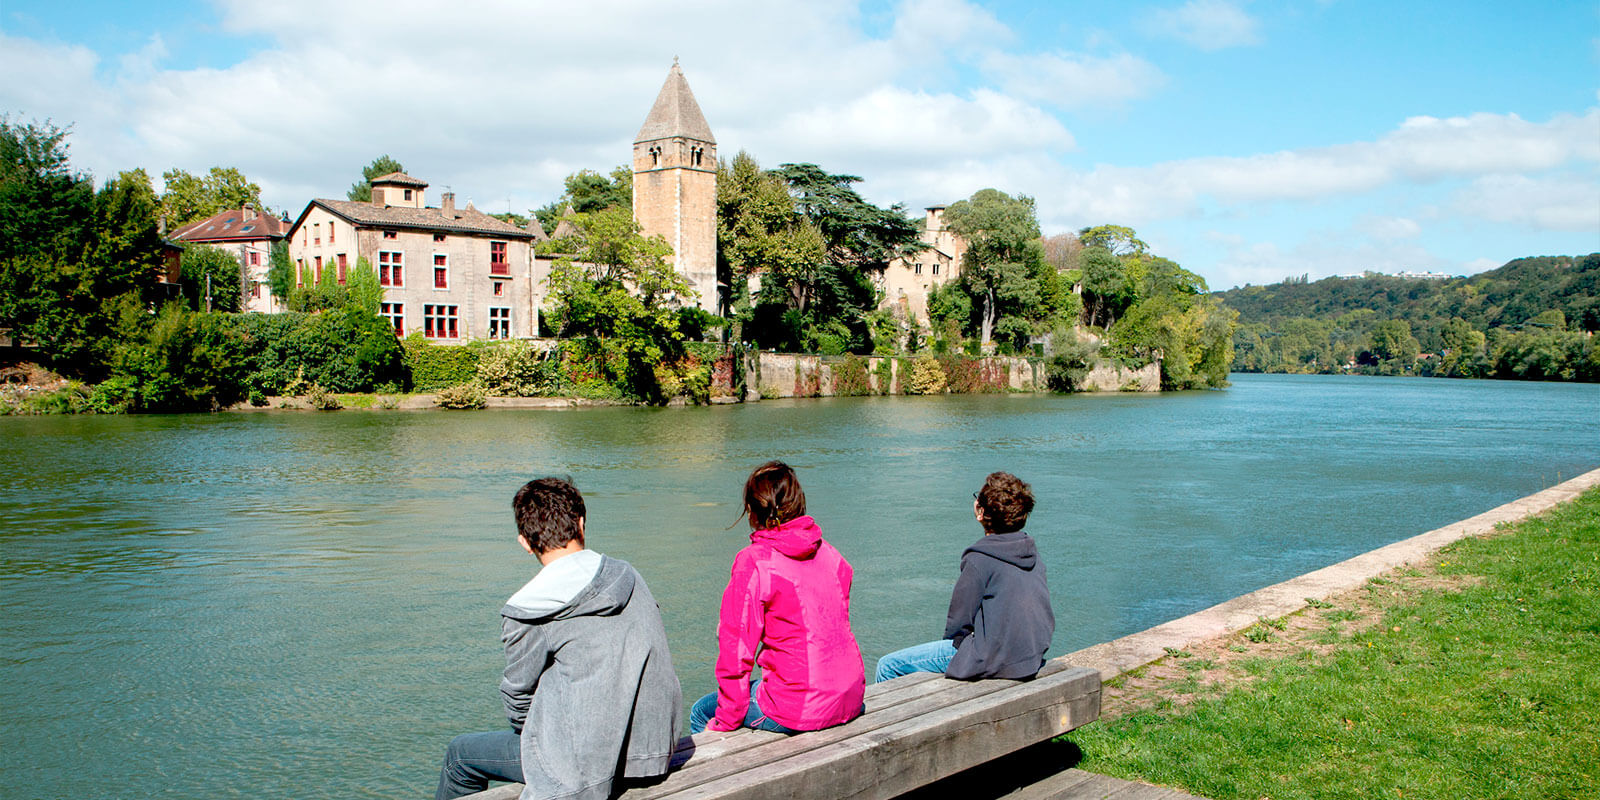 Kanpai Tourisme - Sightseeing Excursions outside of Lyon